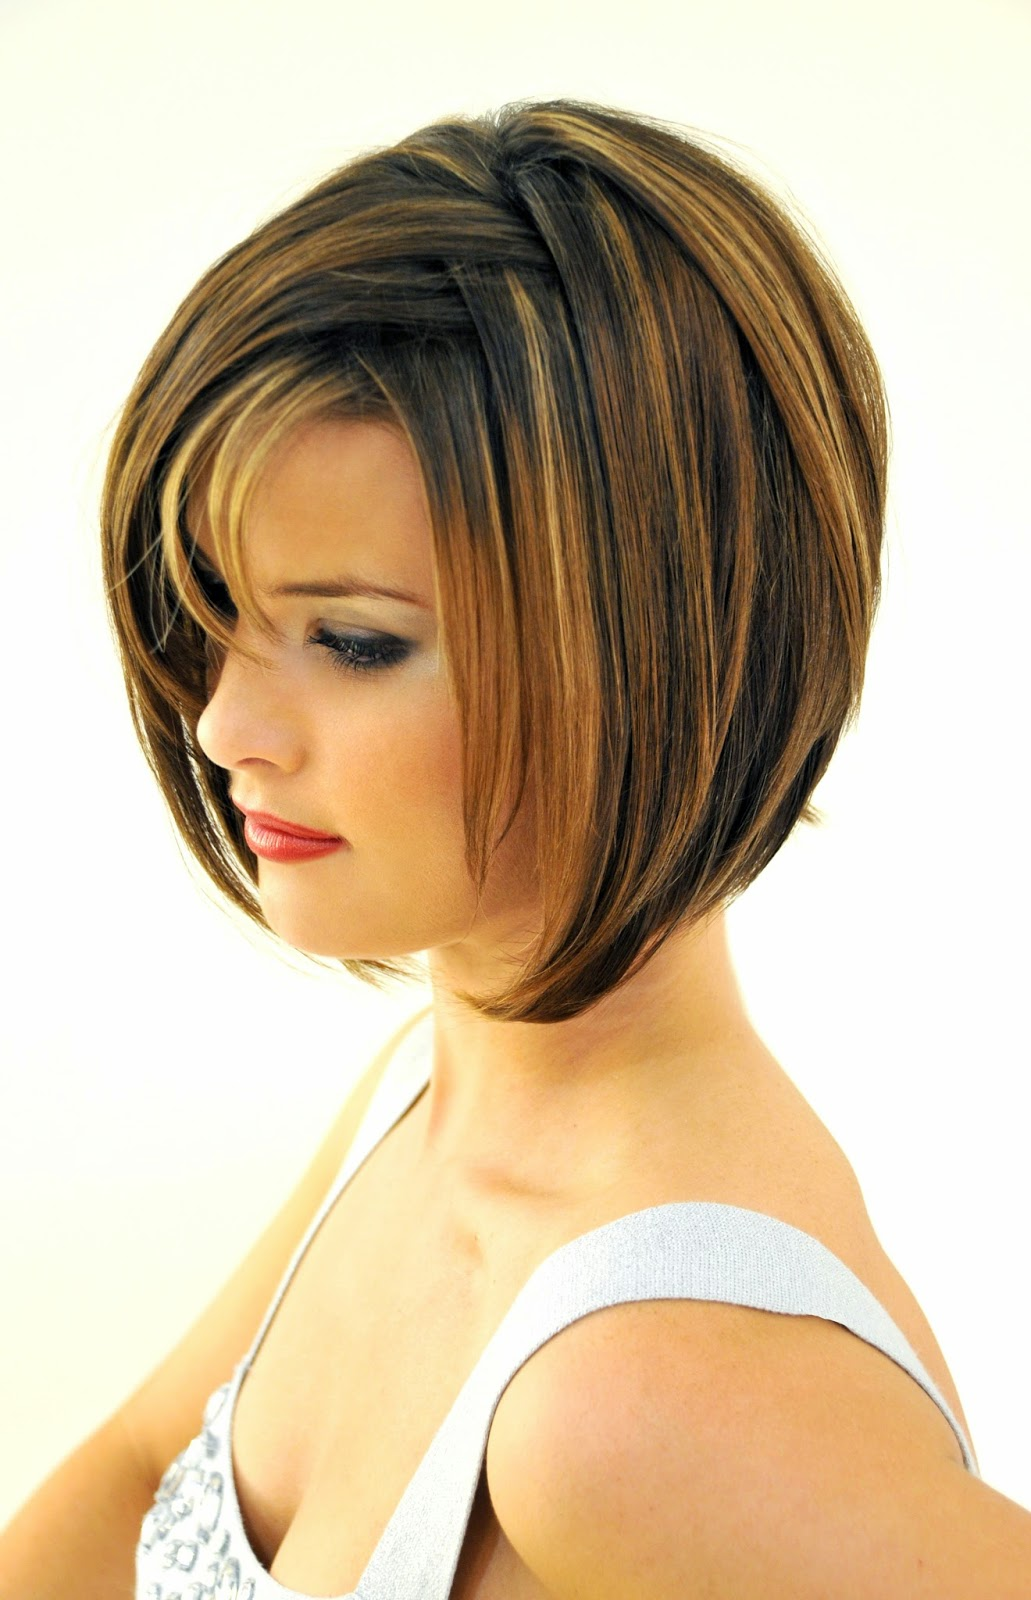 photos of haircuts for layered bob hairstyles for chic beautiful looks the